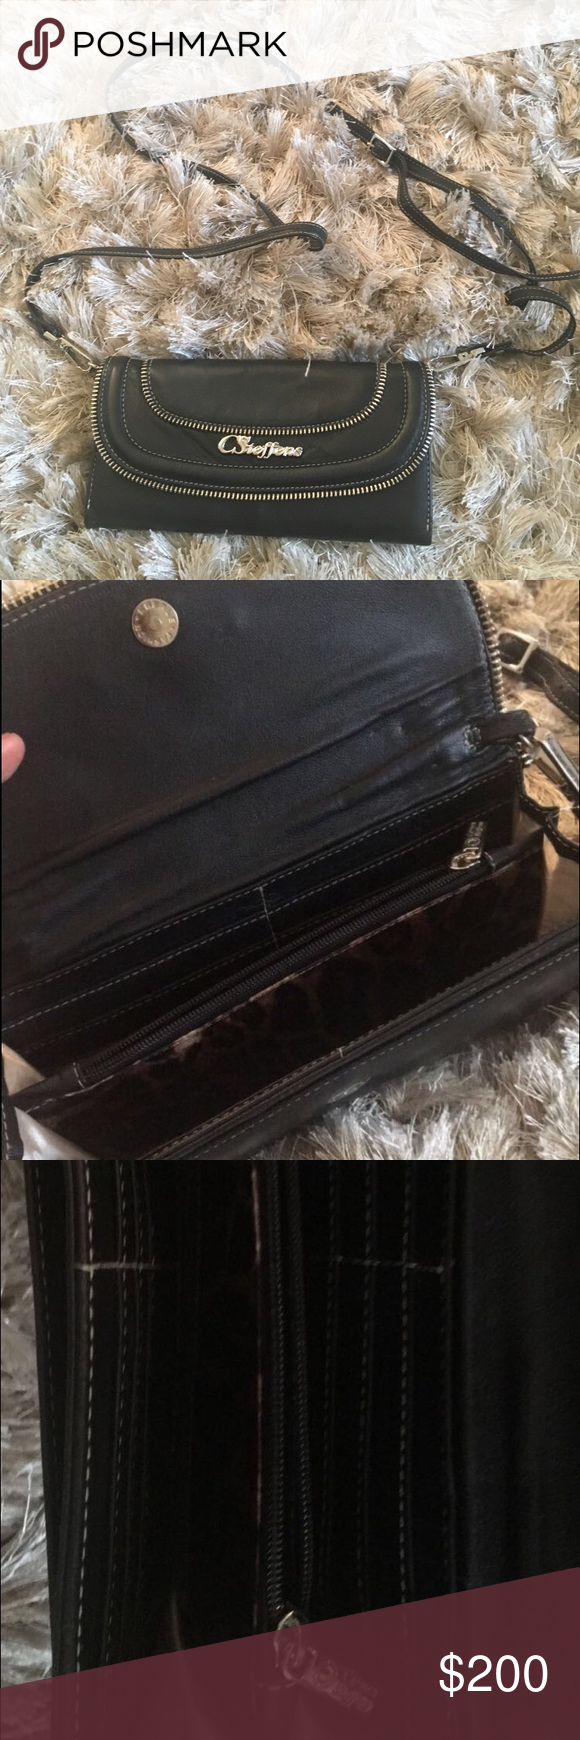 Carmen Steffens clutch with removable strap Removable strap. 12 card slots. One zipper pocket. One external pocket. Never been used carmen steffens Bags Clutches & Wristlets